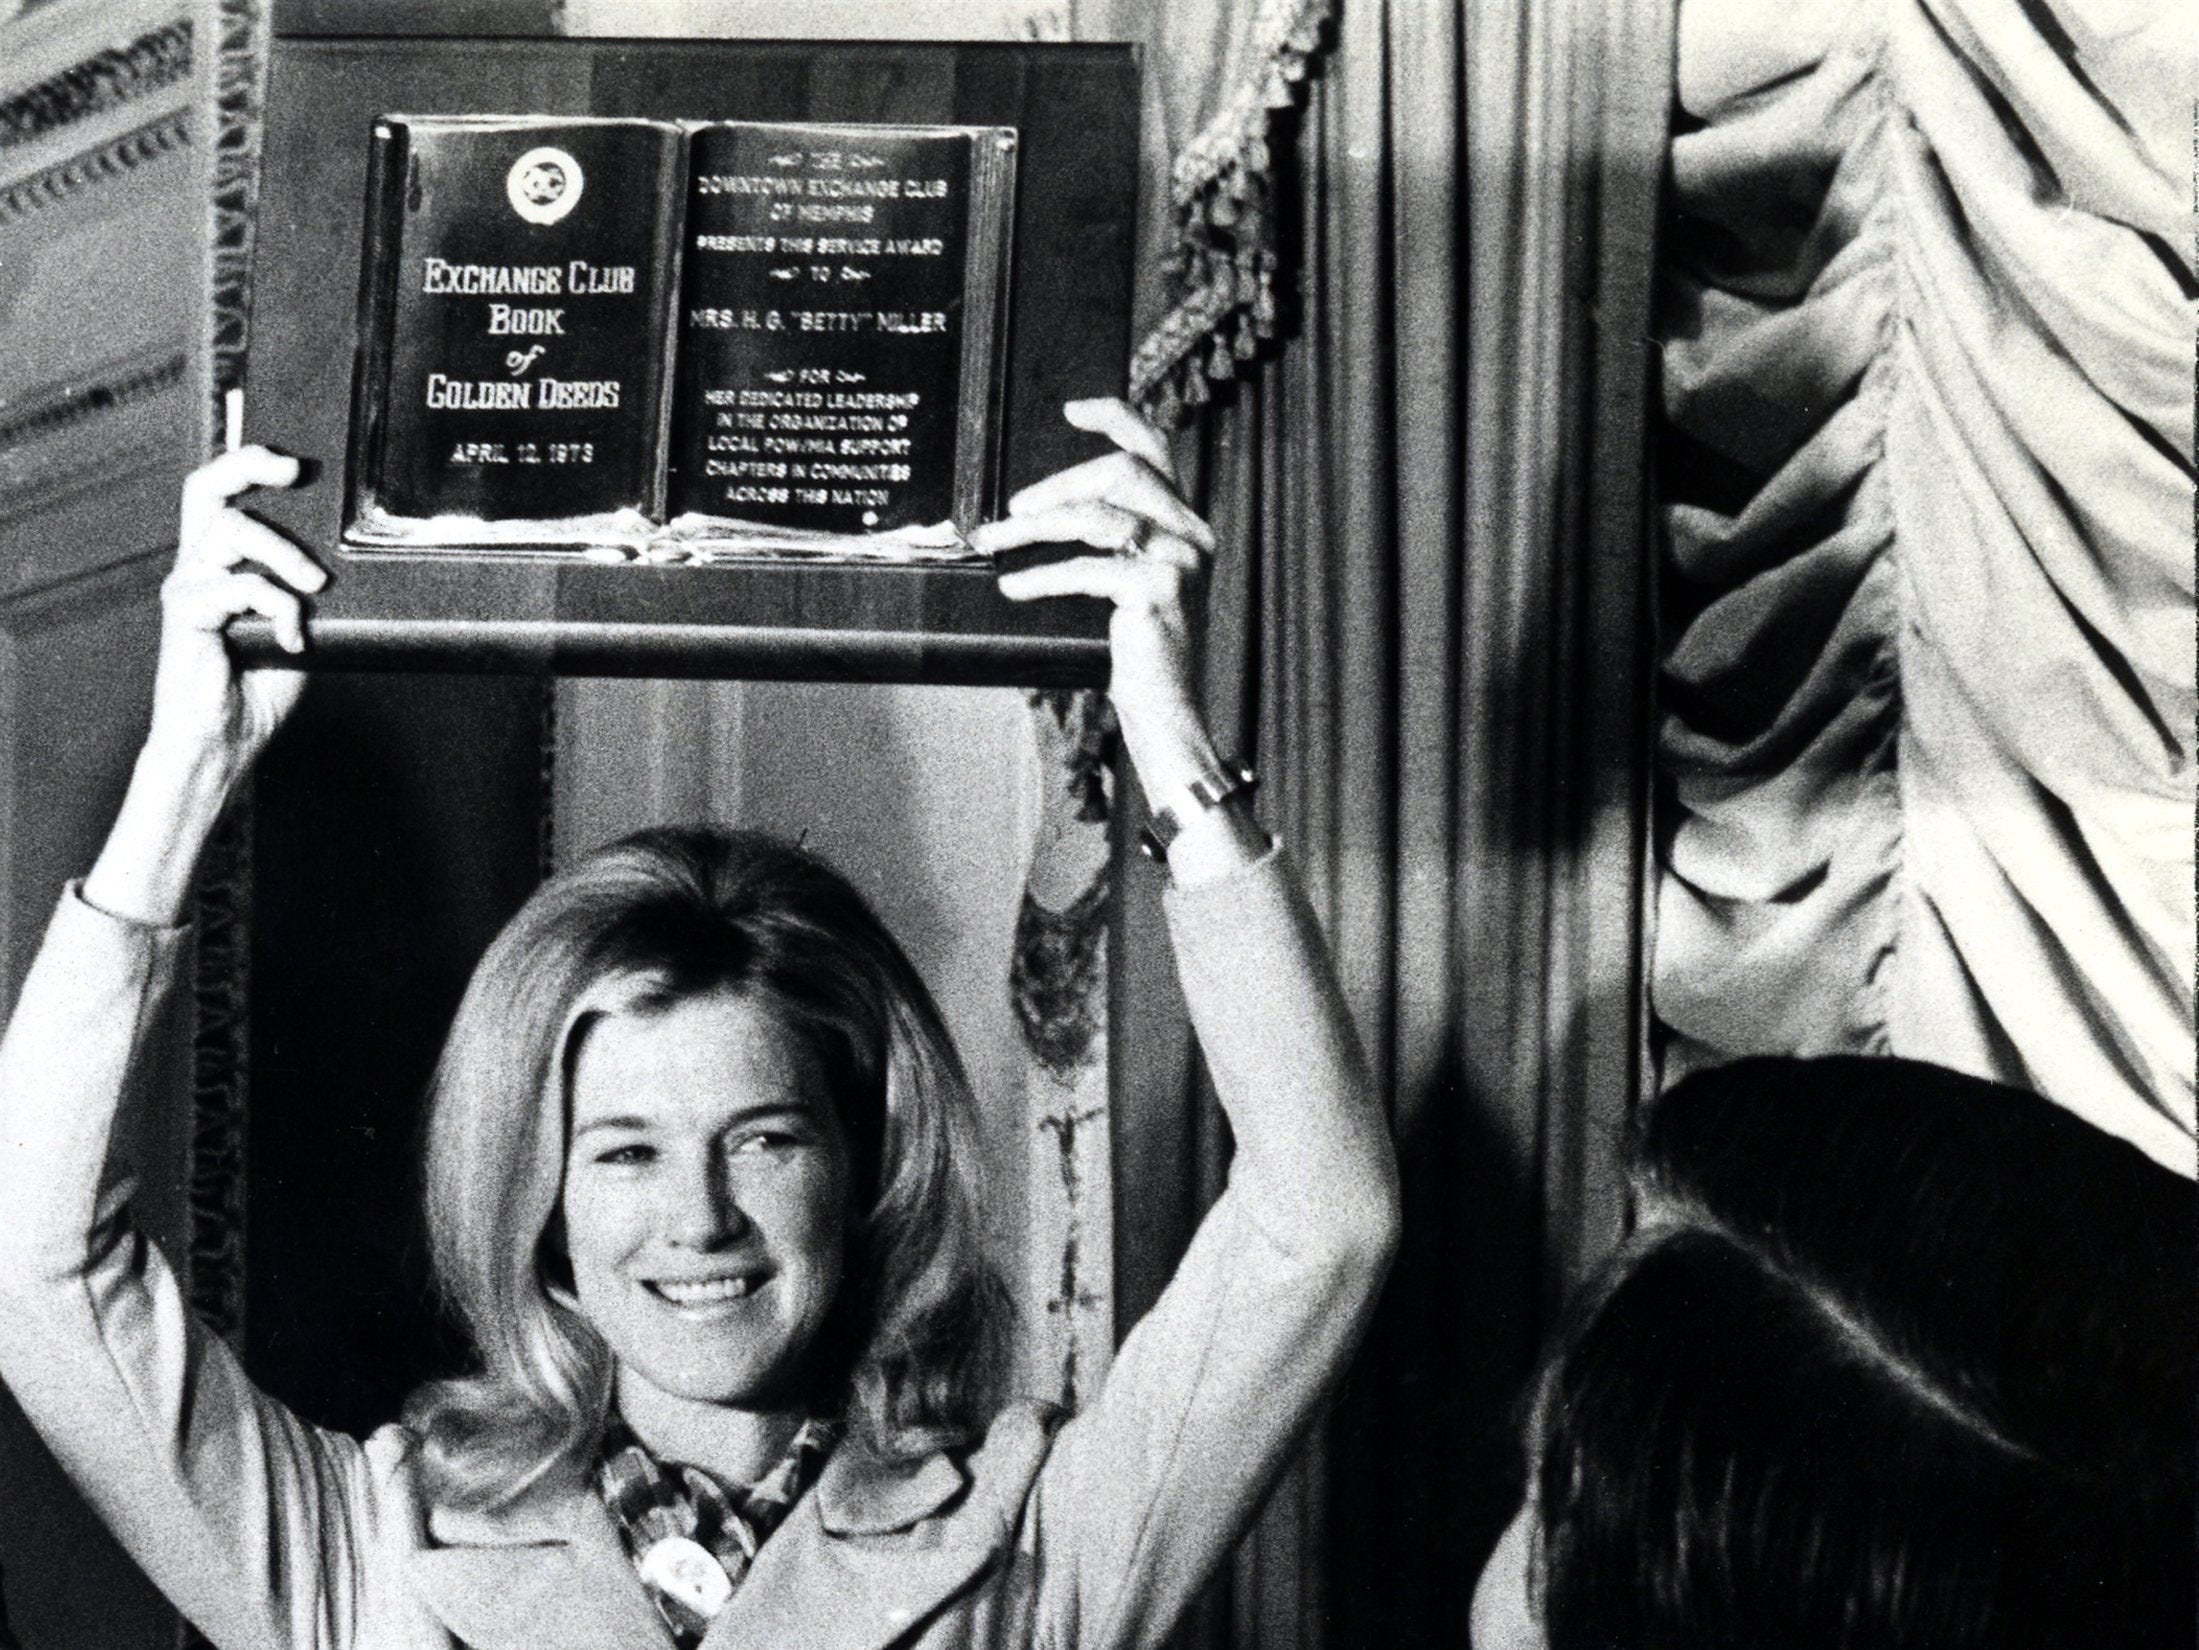 The Exchange Club's highest public-service award, the Book of Golden Deeds, went to Betty Miller, the petite, blond wife of Lt. Col. Henry G. Miller of Navy-Memphis on 12 Apr 1973.  The award was given for her work with POW and MIA support over a five year period.  Memphis Mayor Wyeth Chandler (Right) presented her with a City of Memphis Certificate of Achievement as well.  Richard Gardner / The Commercial Appeal files.